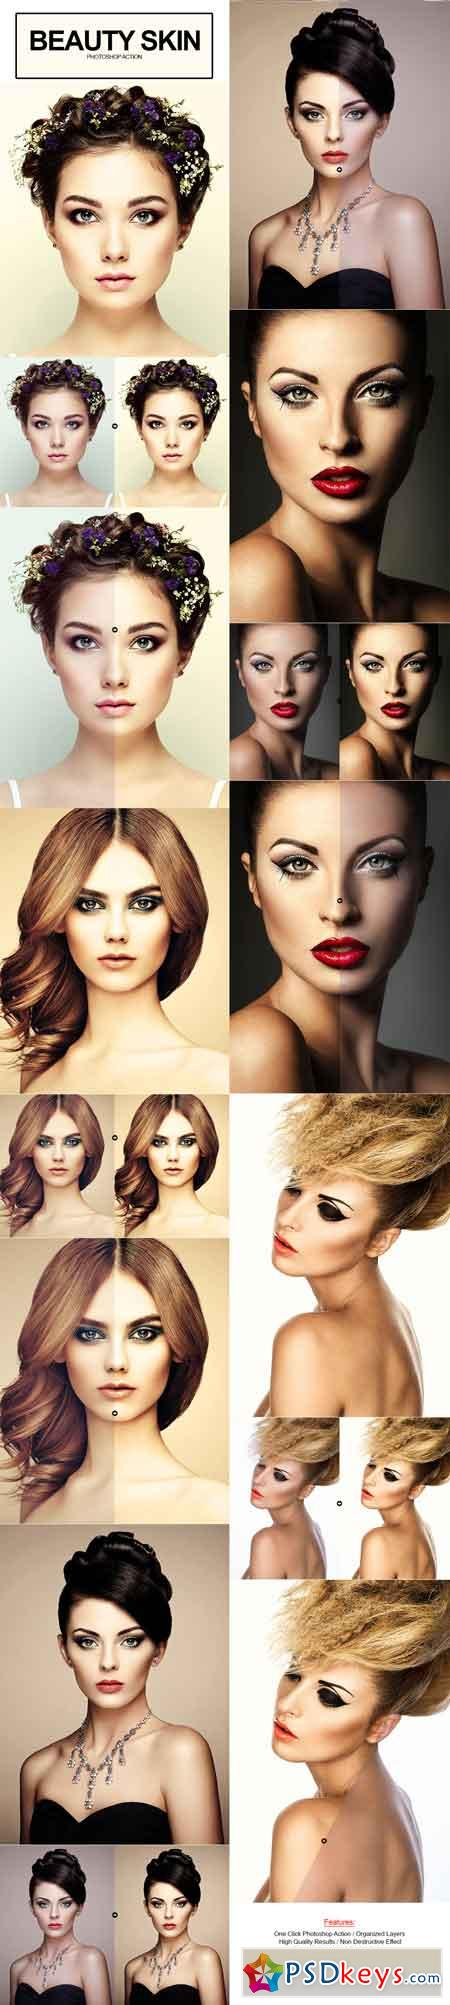 Beauty Skin Photoshop Action 17804783